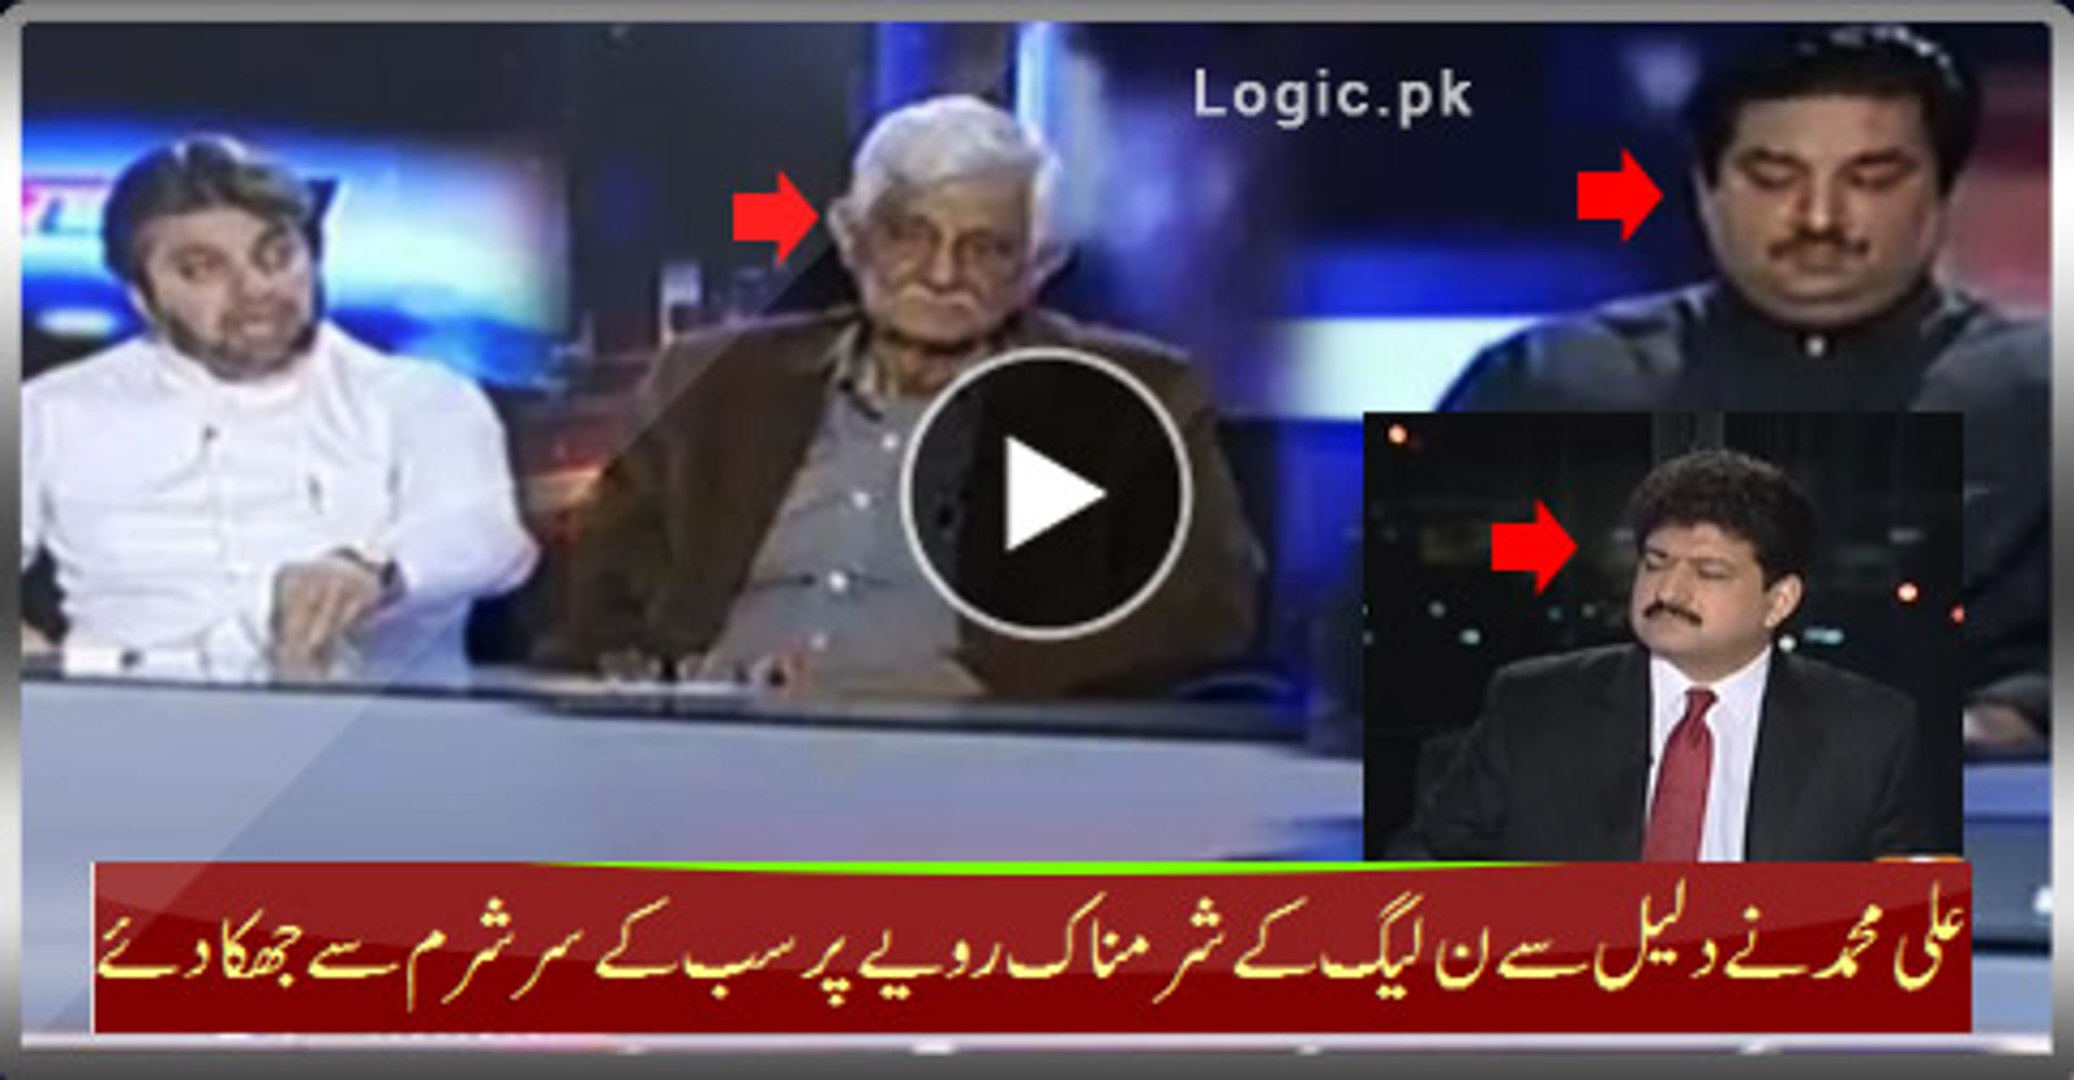 Ali's Logical Question Hangs Down The Head Of Whole Talk show